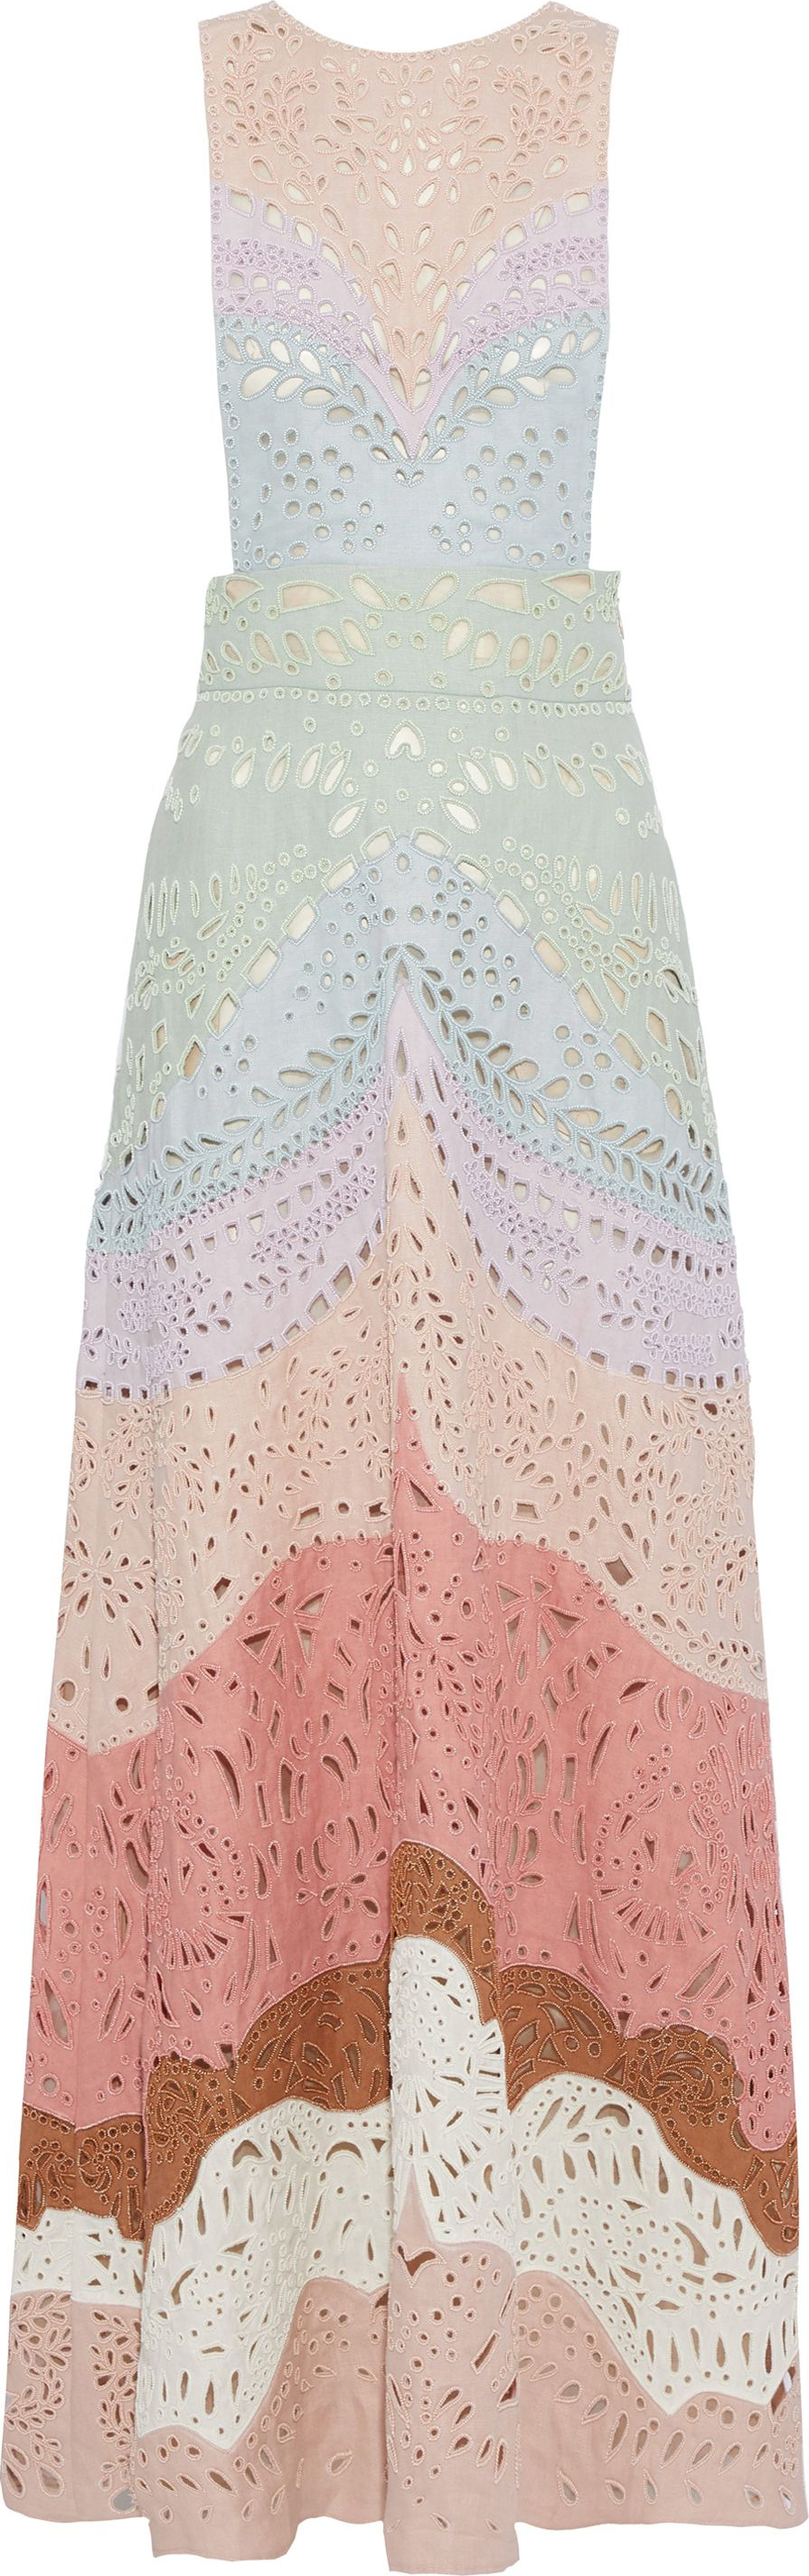 11b379c1c458 Valentino Beaded color-block broderie anglaise linen maxi dress - Mkt